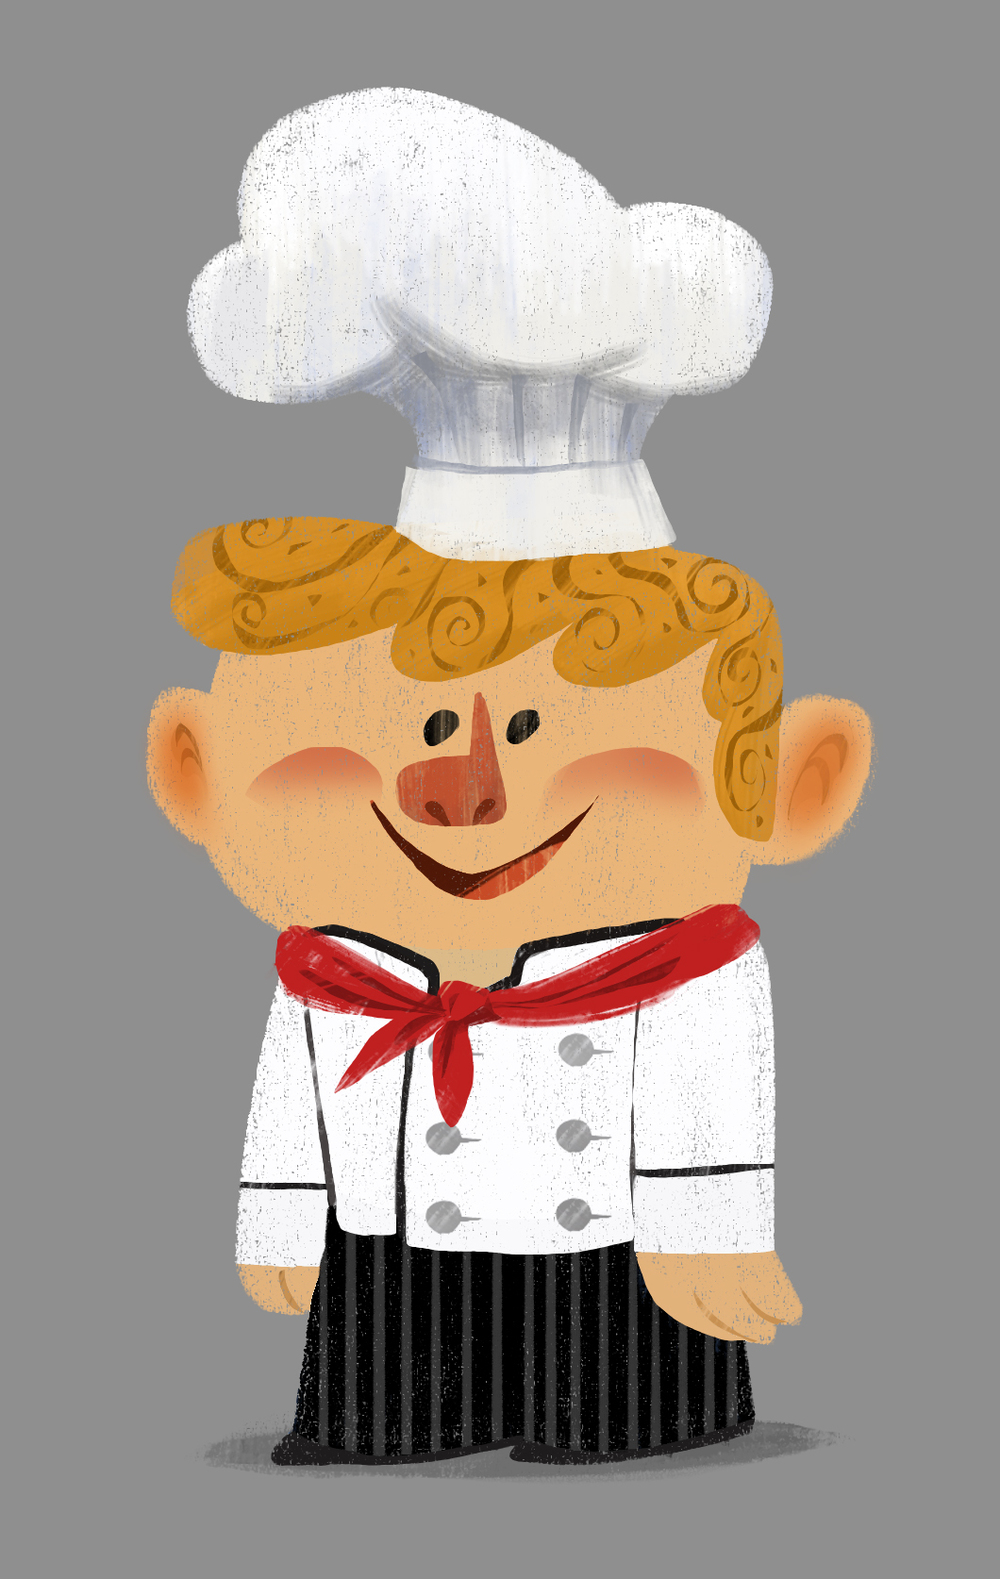 Little Boy Chef.jpg